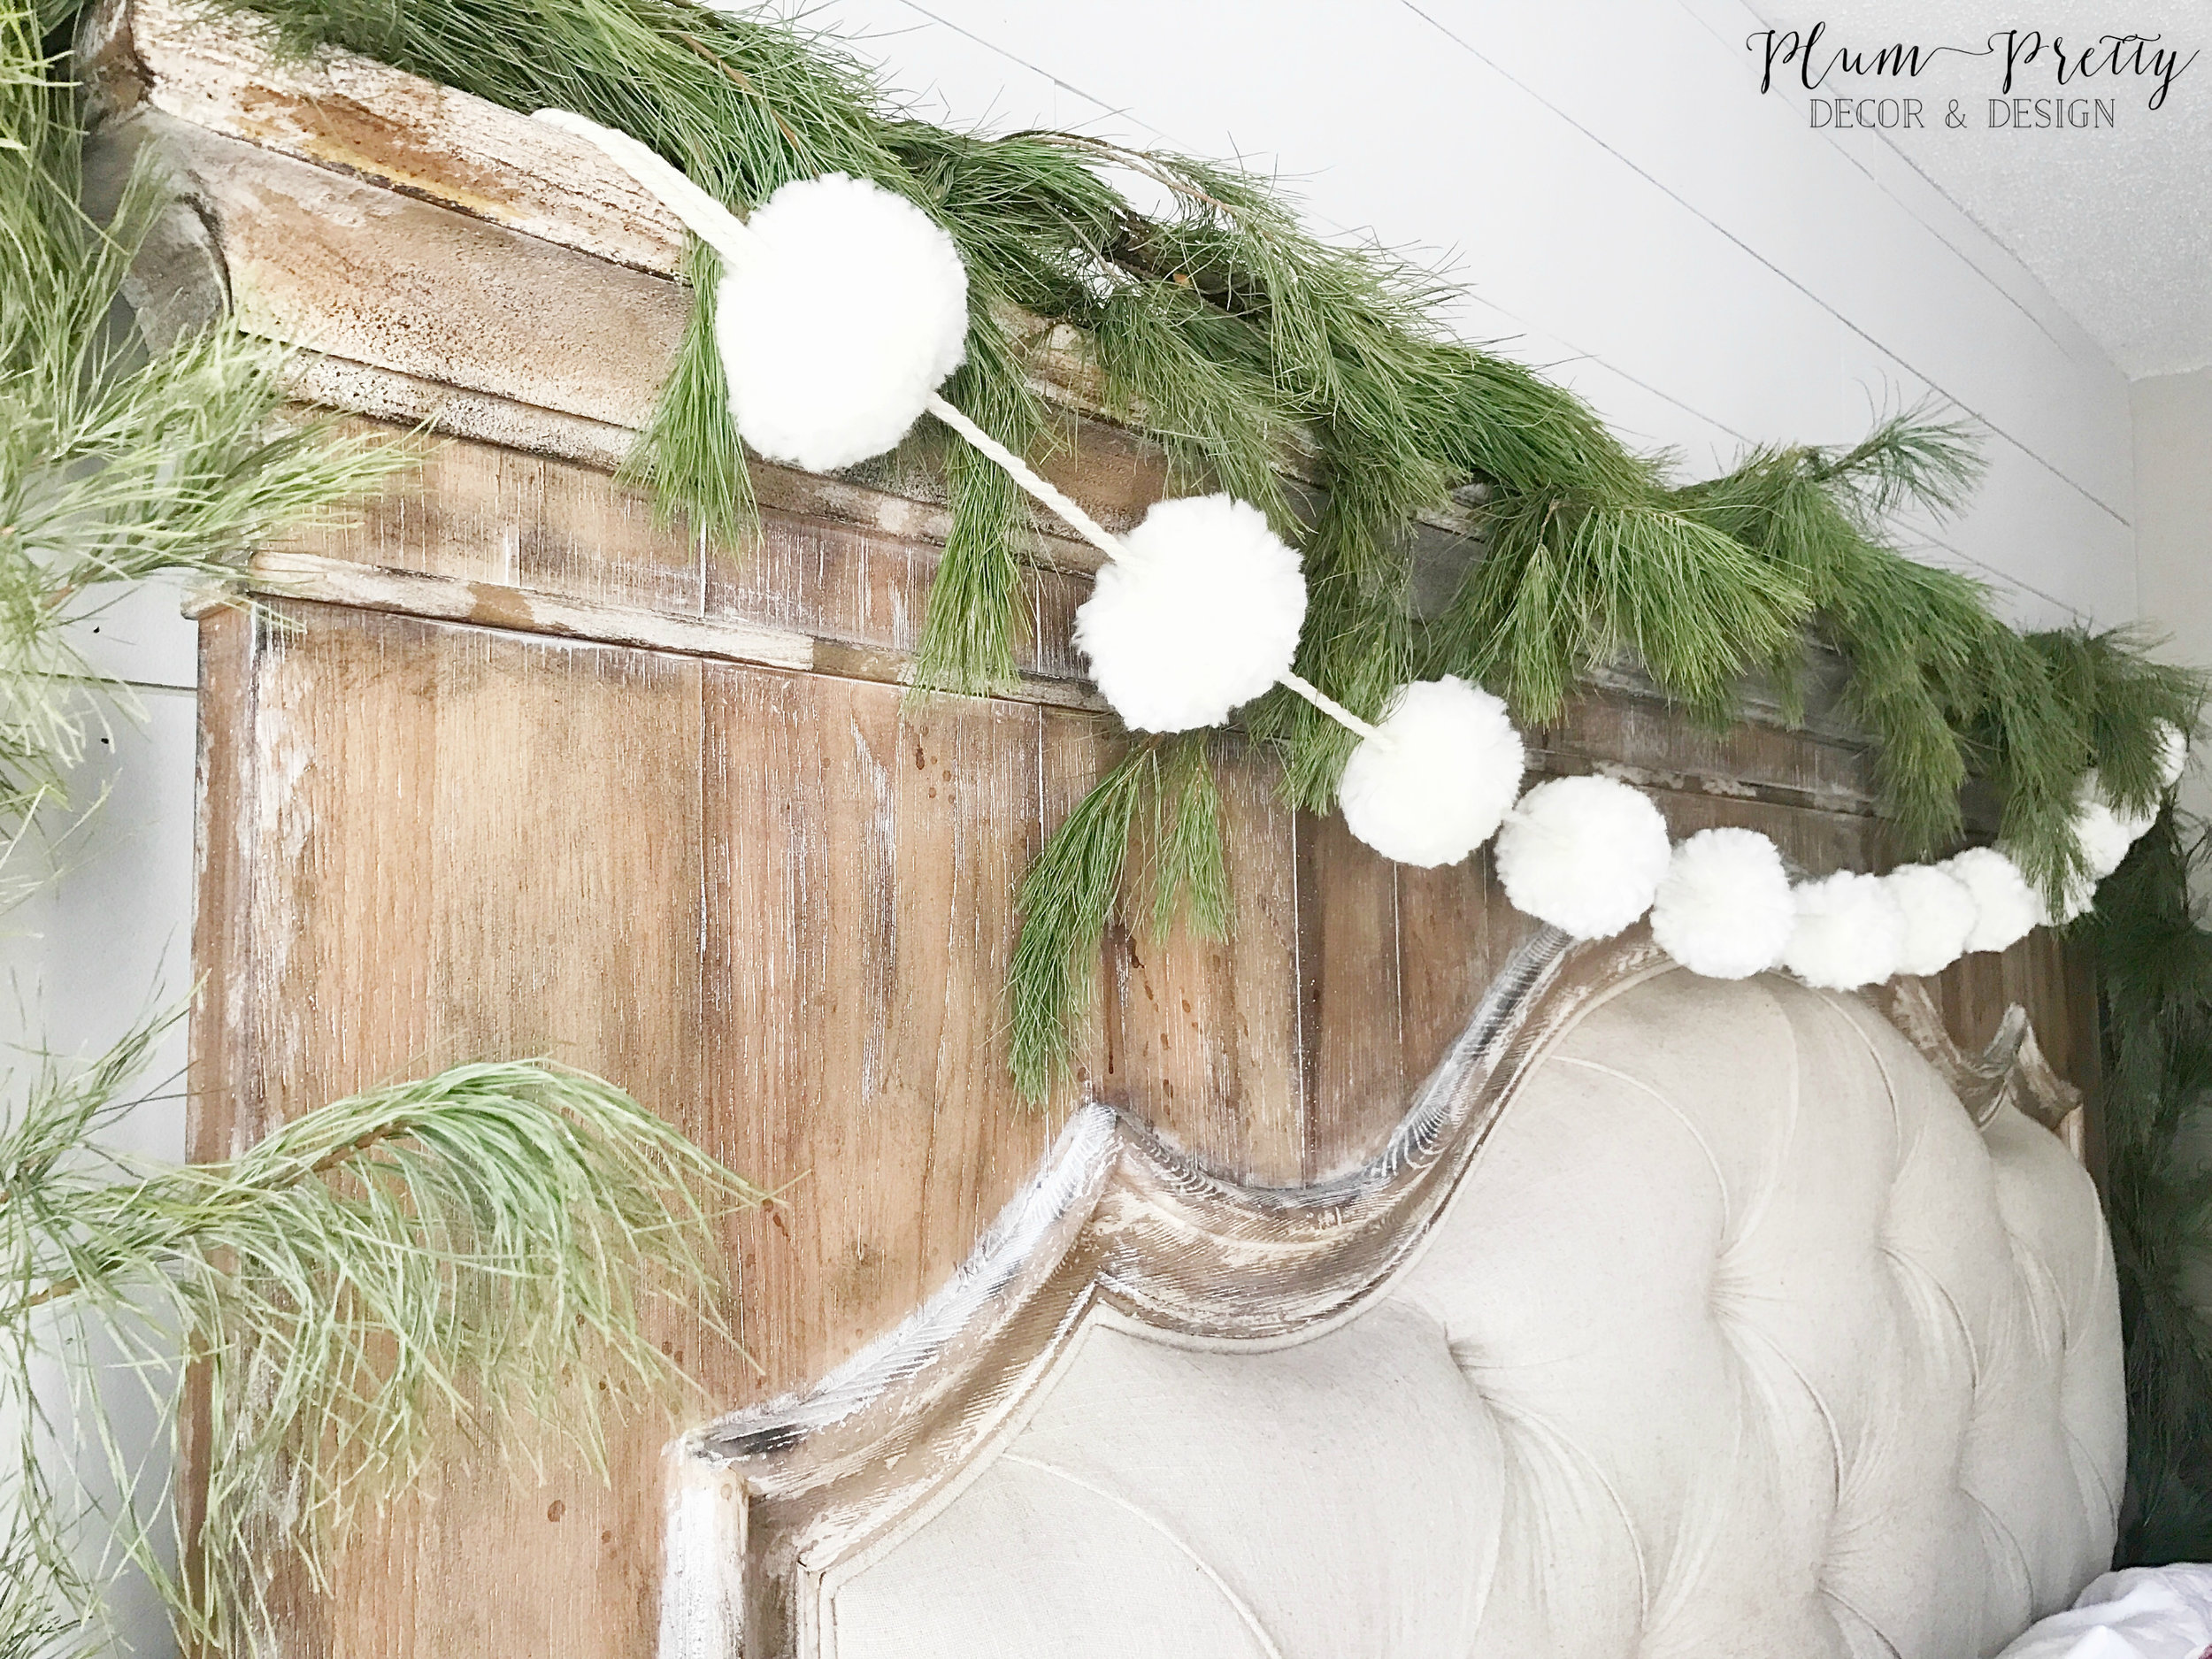 Farmhouse Christmas Bedroom- Tufted Headboard with Pom-pom Garland by Kayla Miller of Plum Pretty Decor and Design